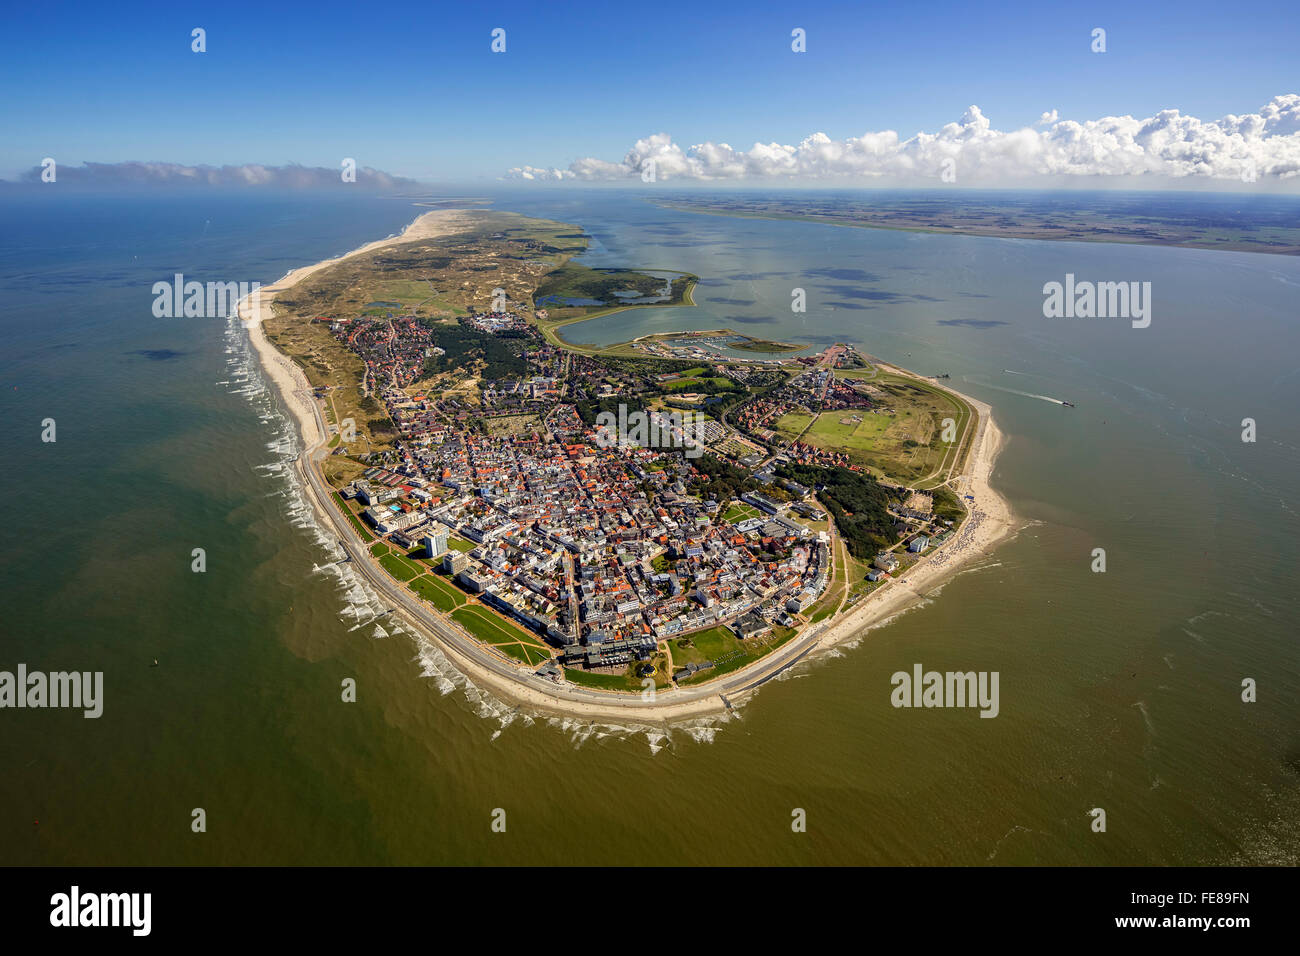 Aerial view, place Norderney, West Island, Wadden Sea, aerial view, Norderney, North Sea, North Sea island, East Stock Photo